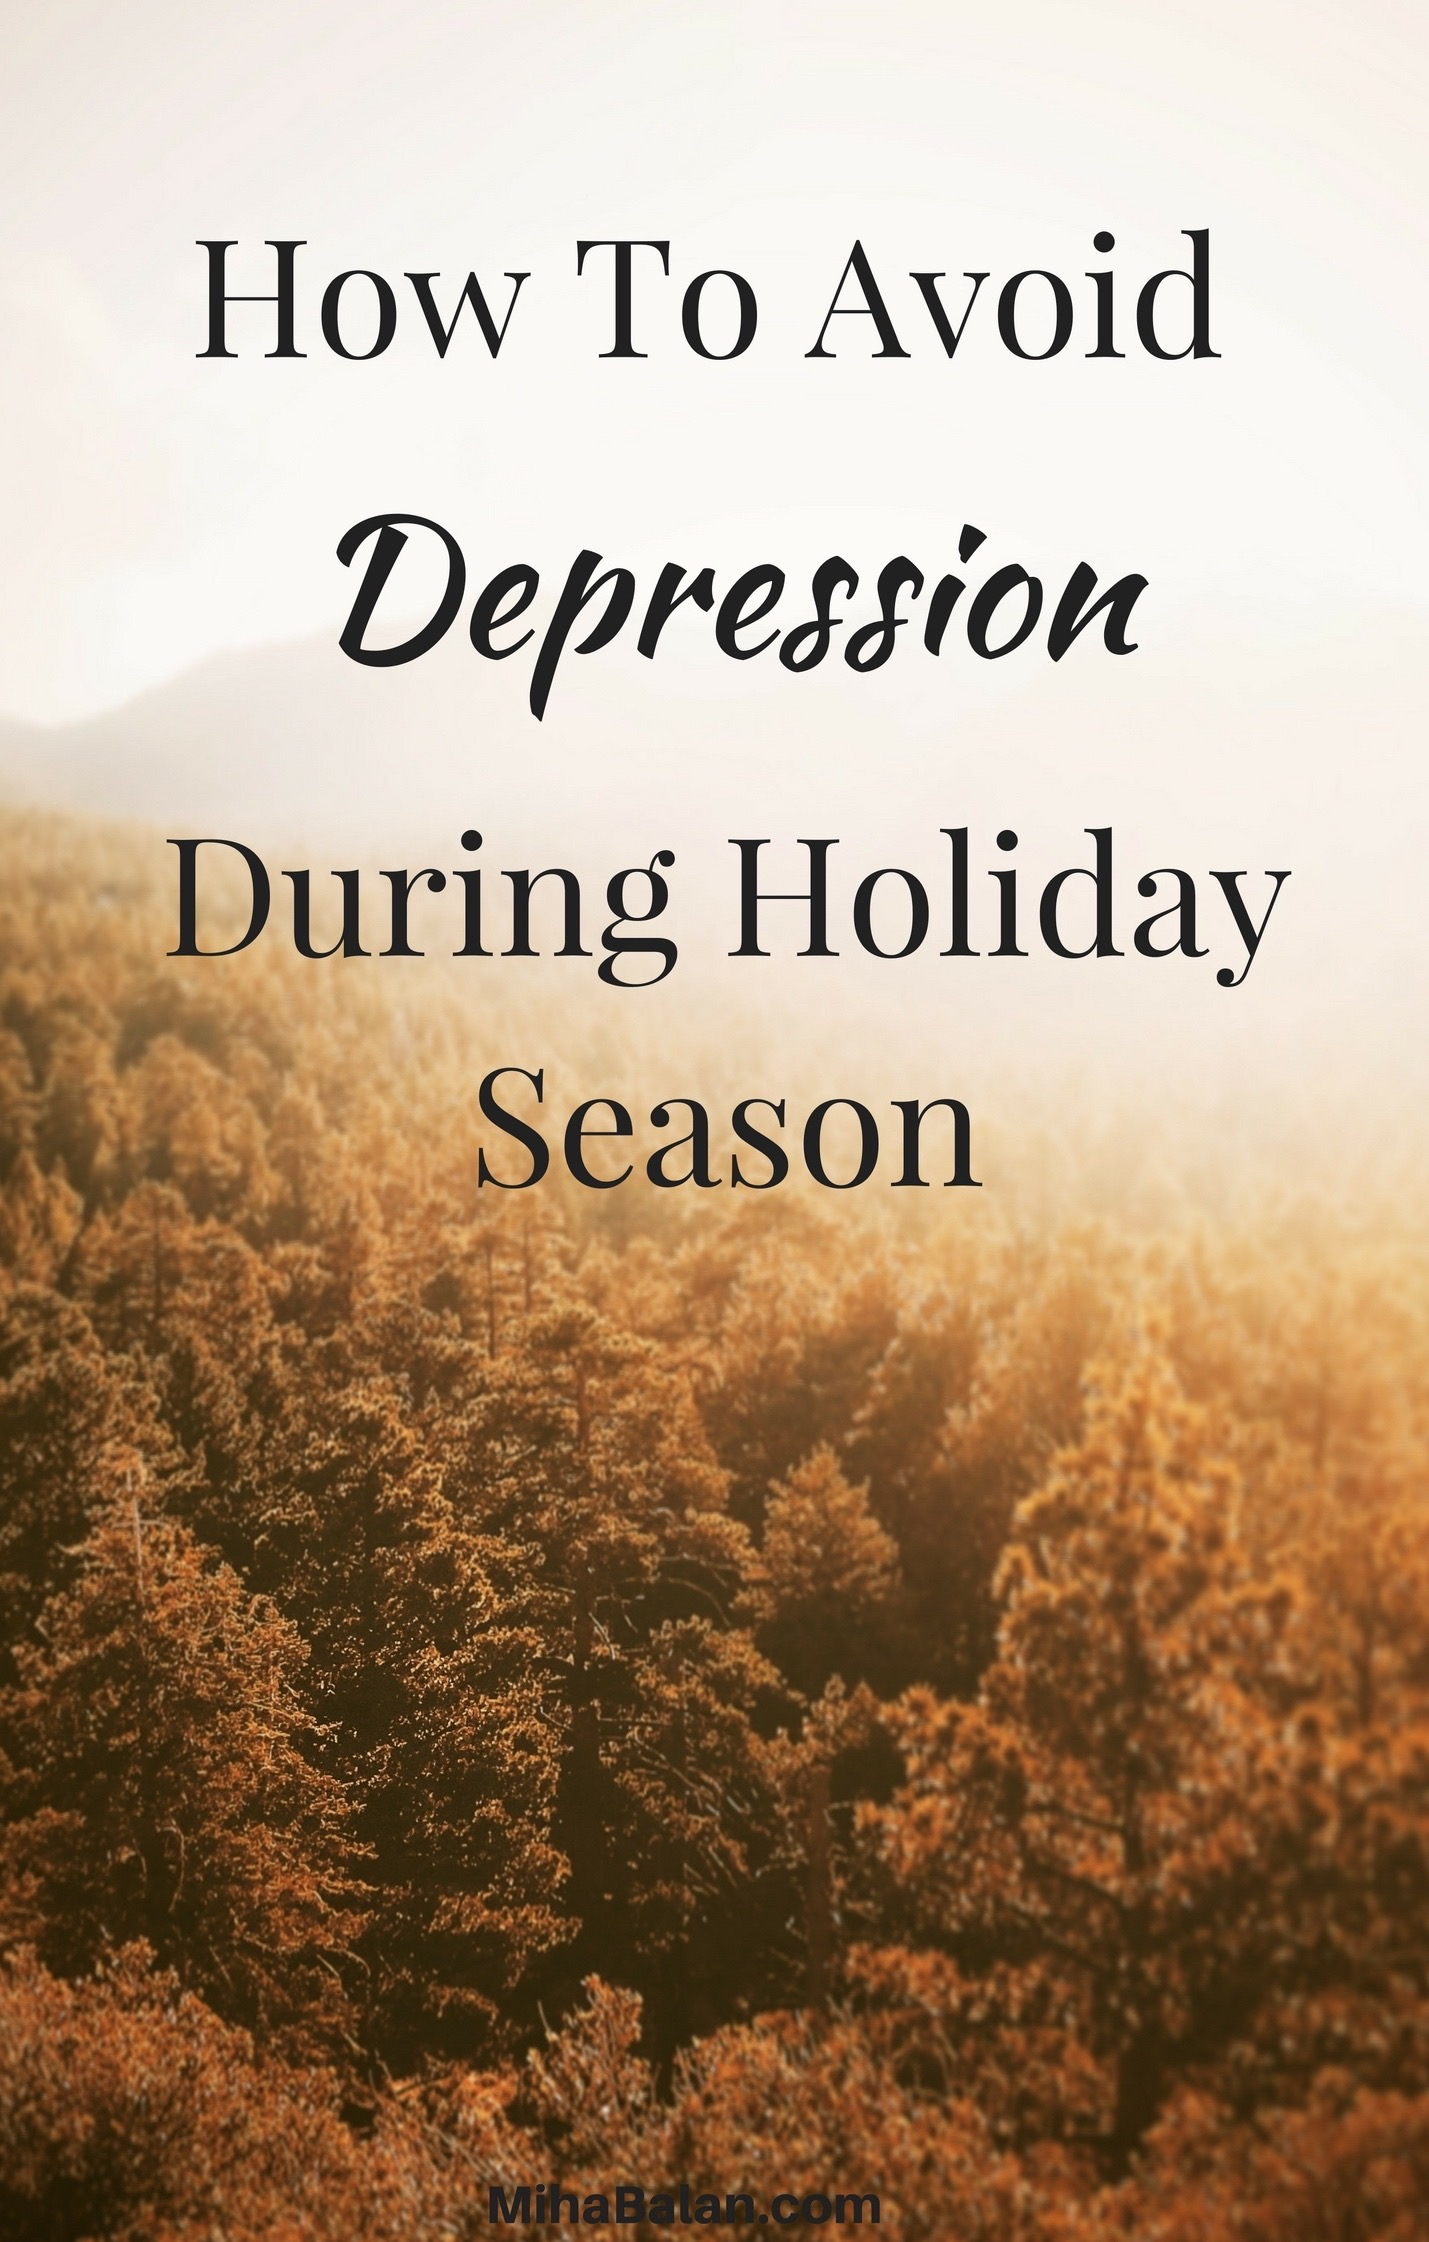 How-To-Avoid-depression-during-holiday-season